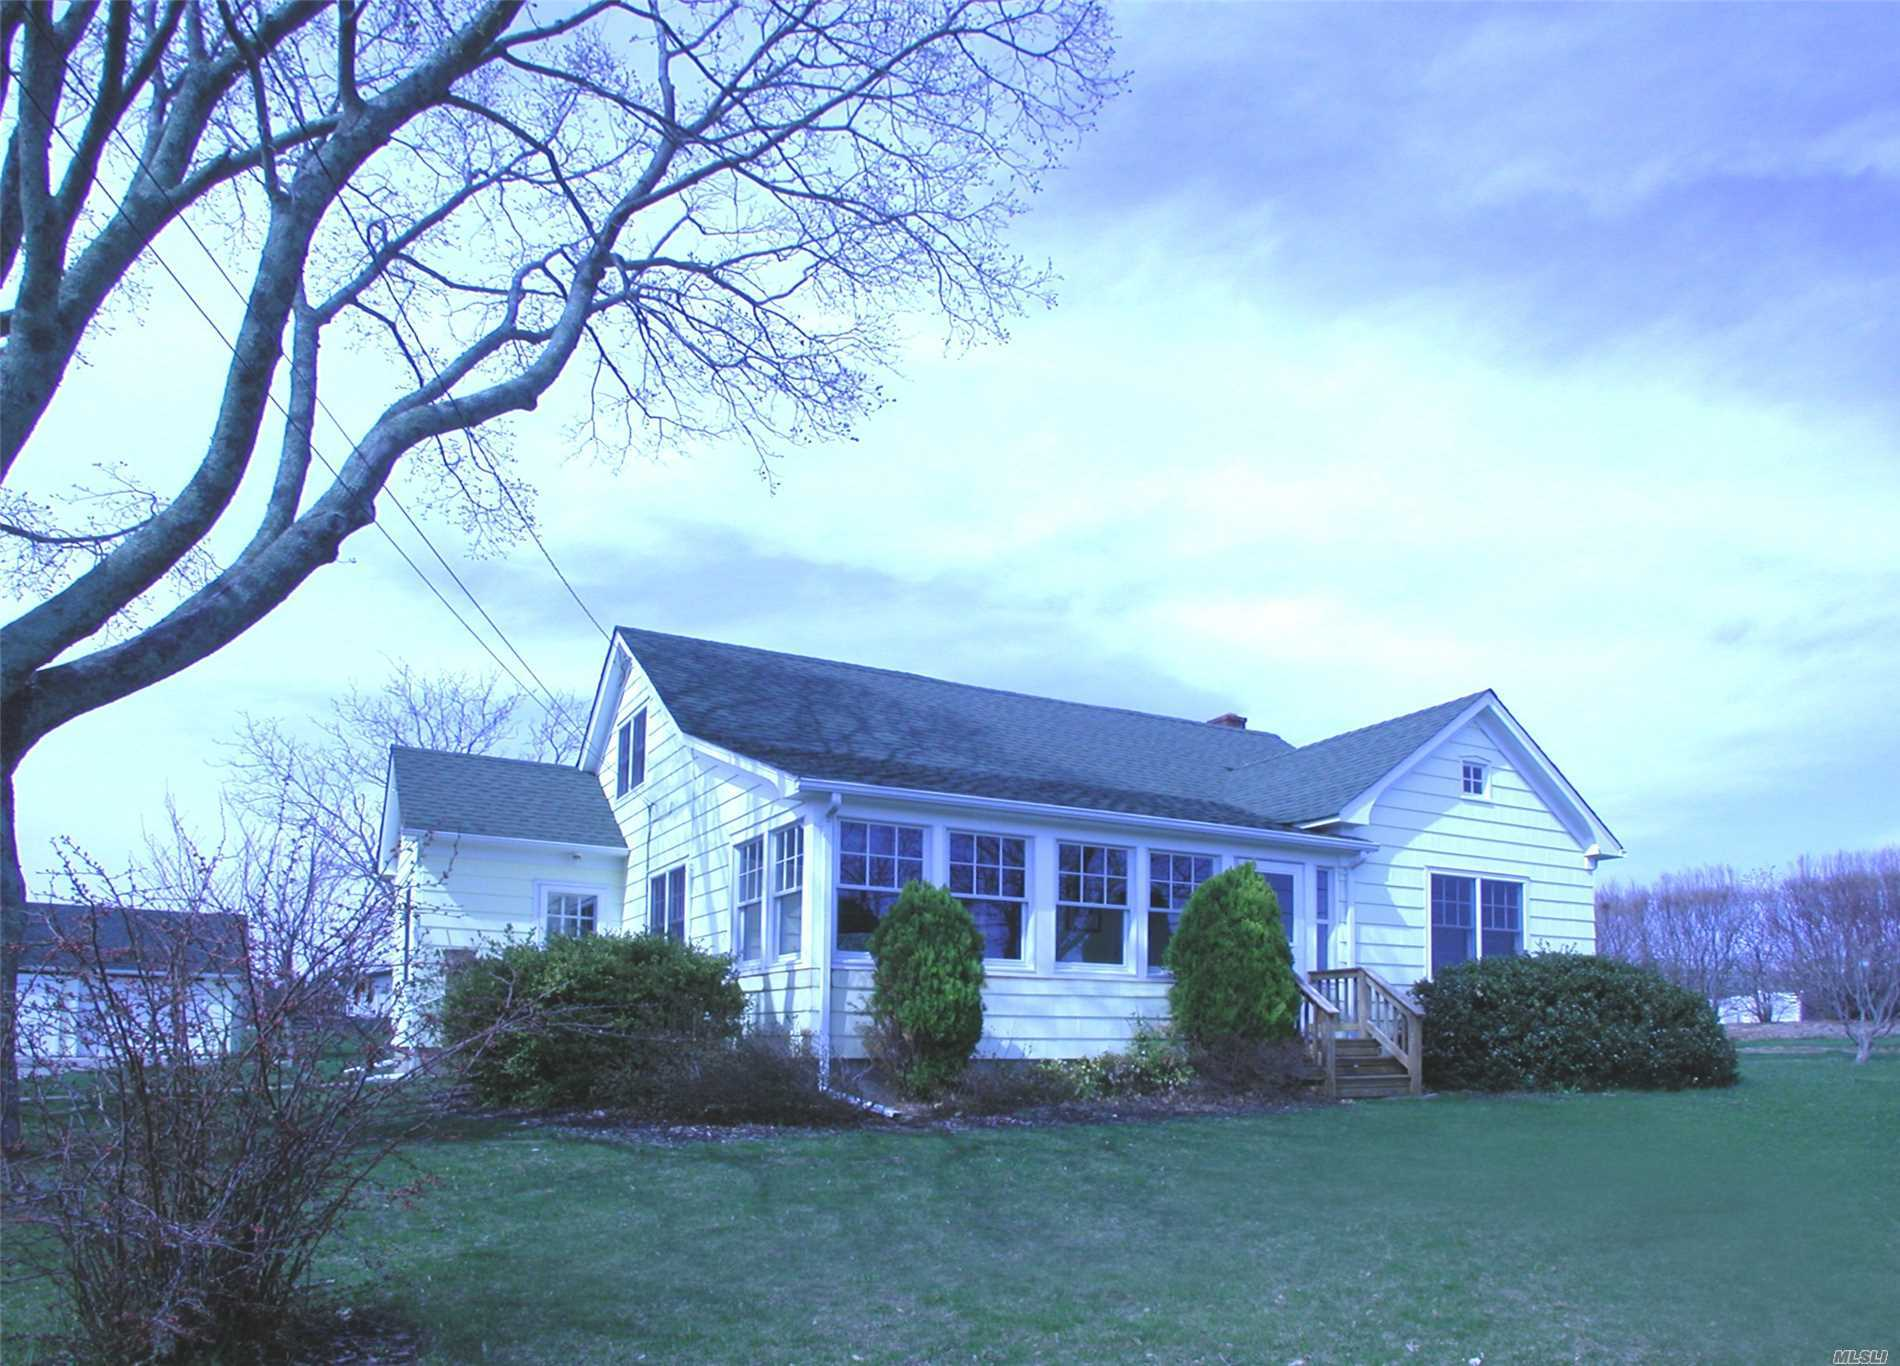 4475 New Suffolk Ave - Mattituck, New York